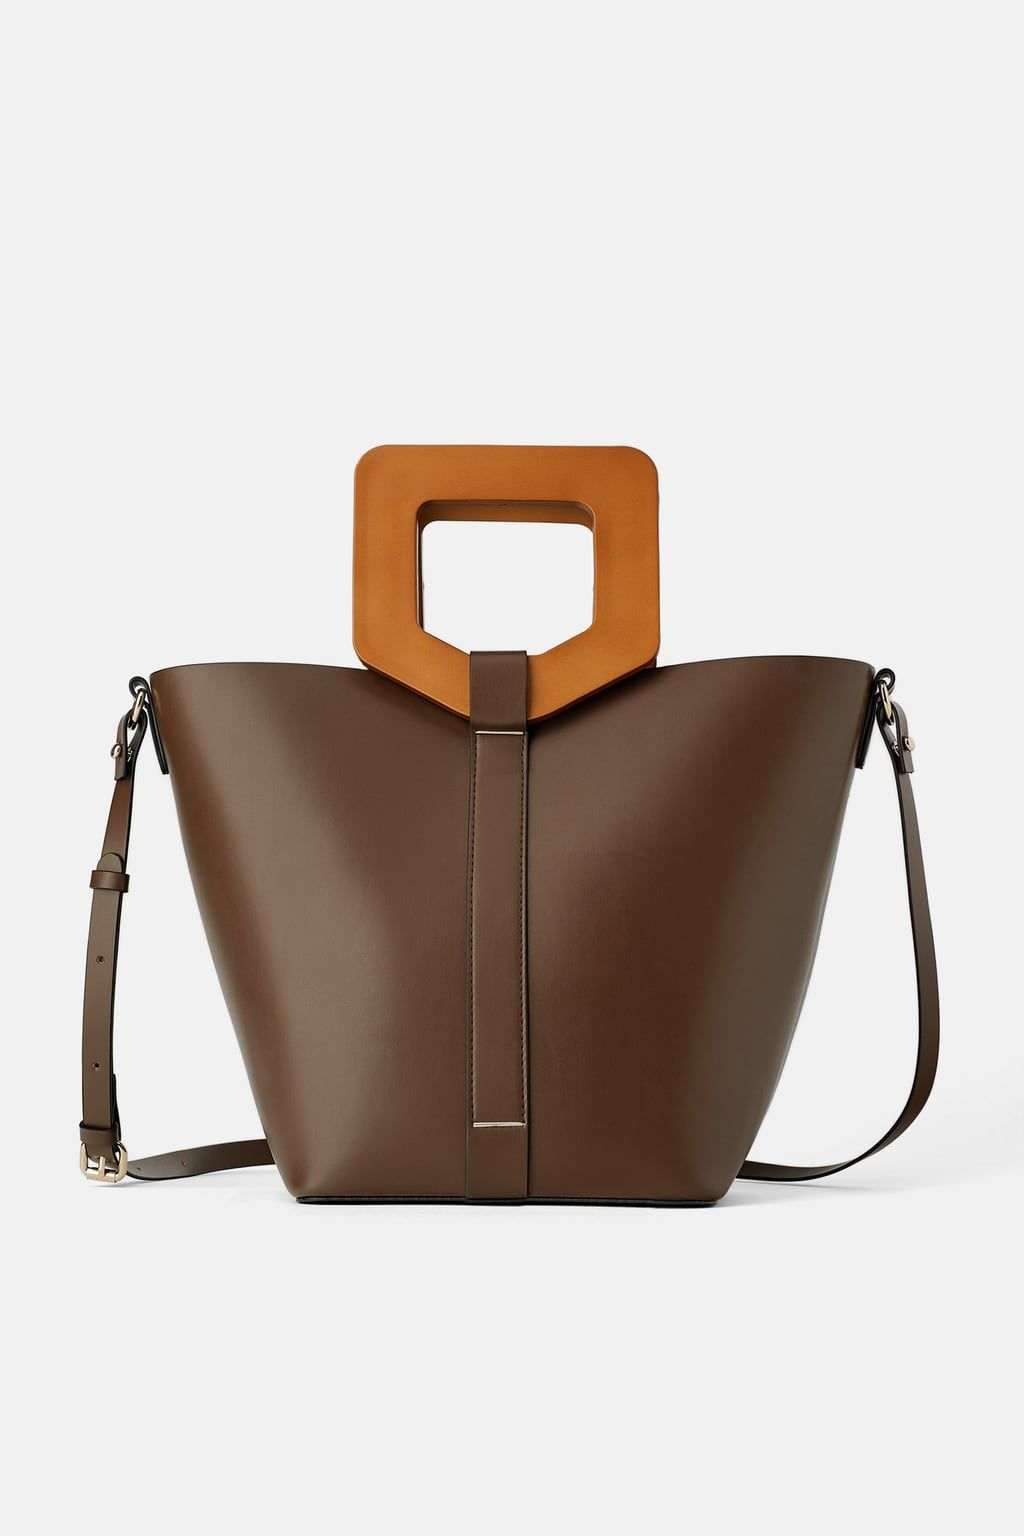 WOOD HANDLED STRUCTURED SHOPPER #woodentotebag